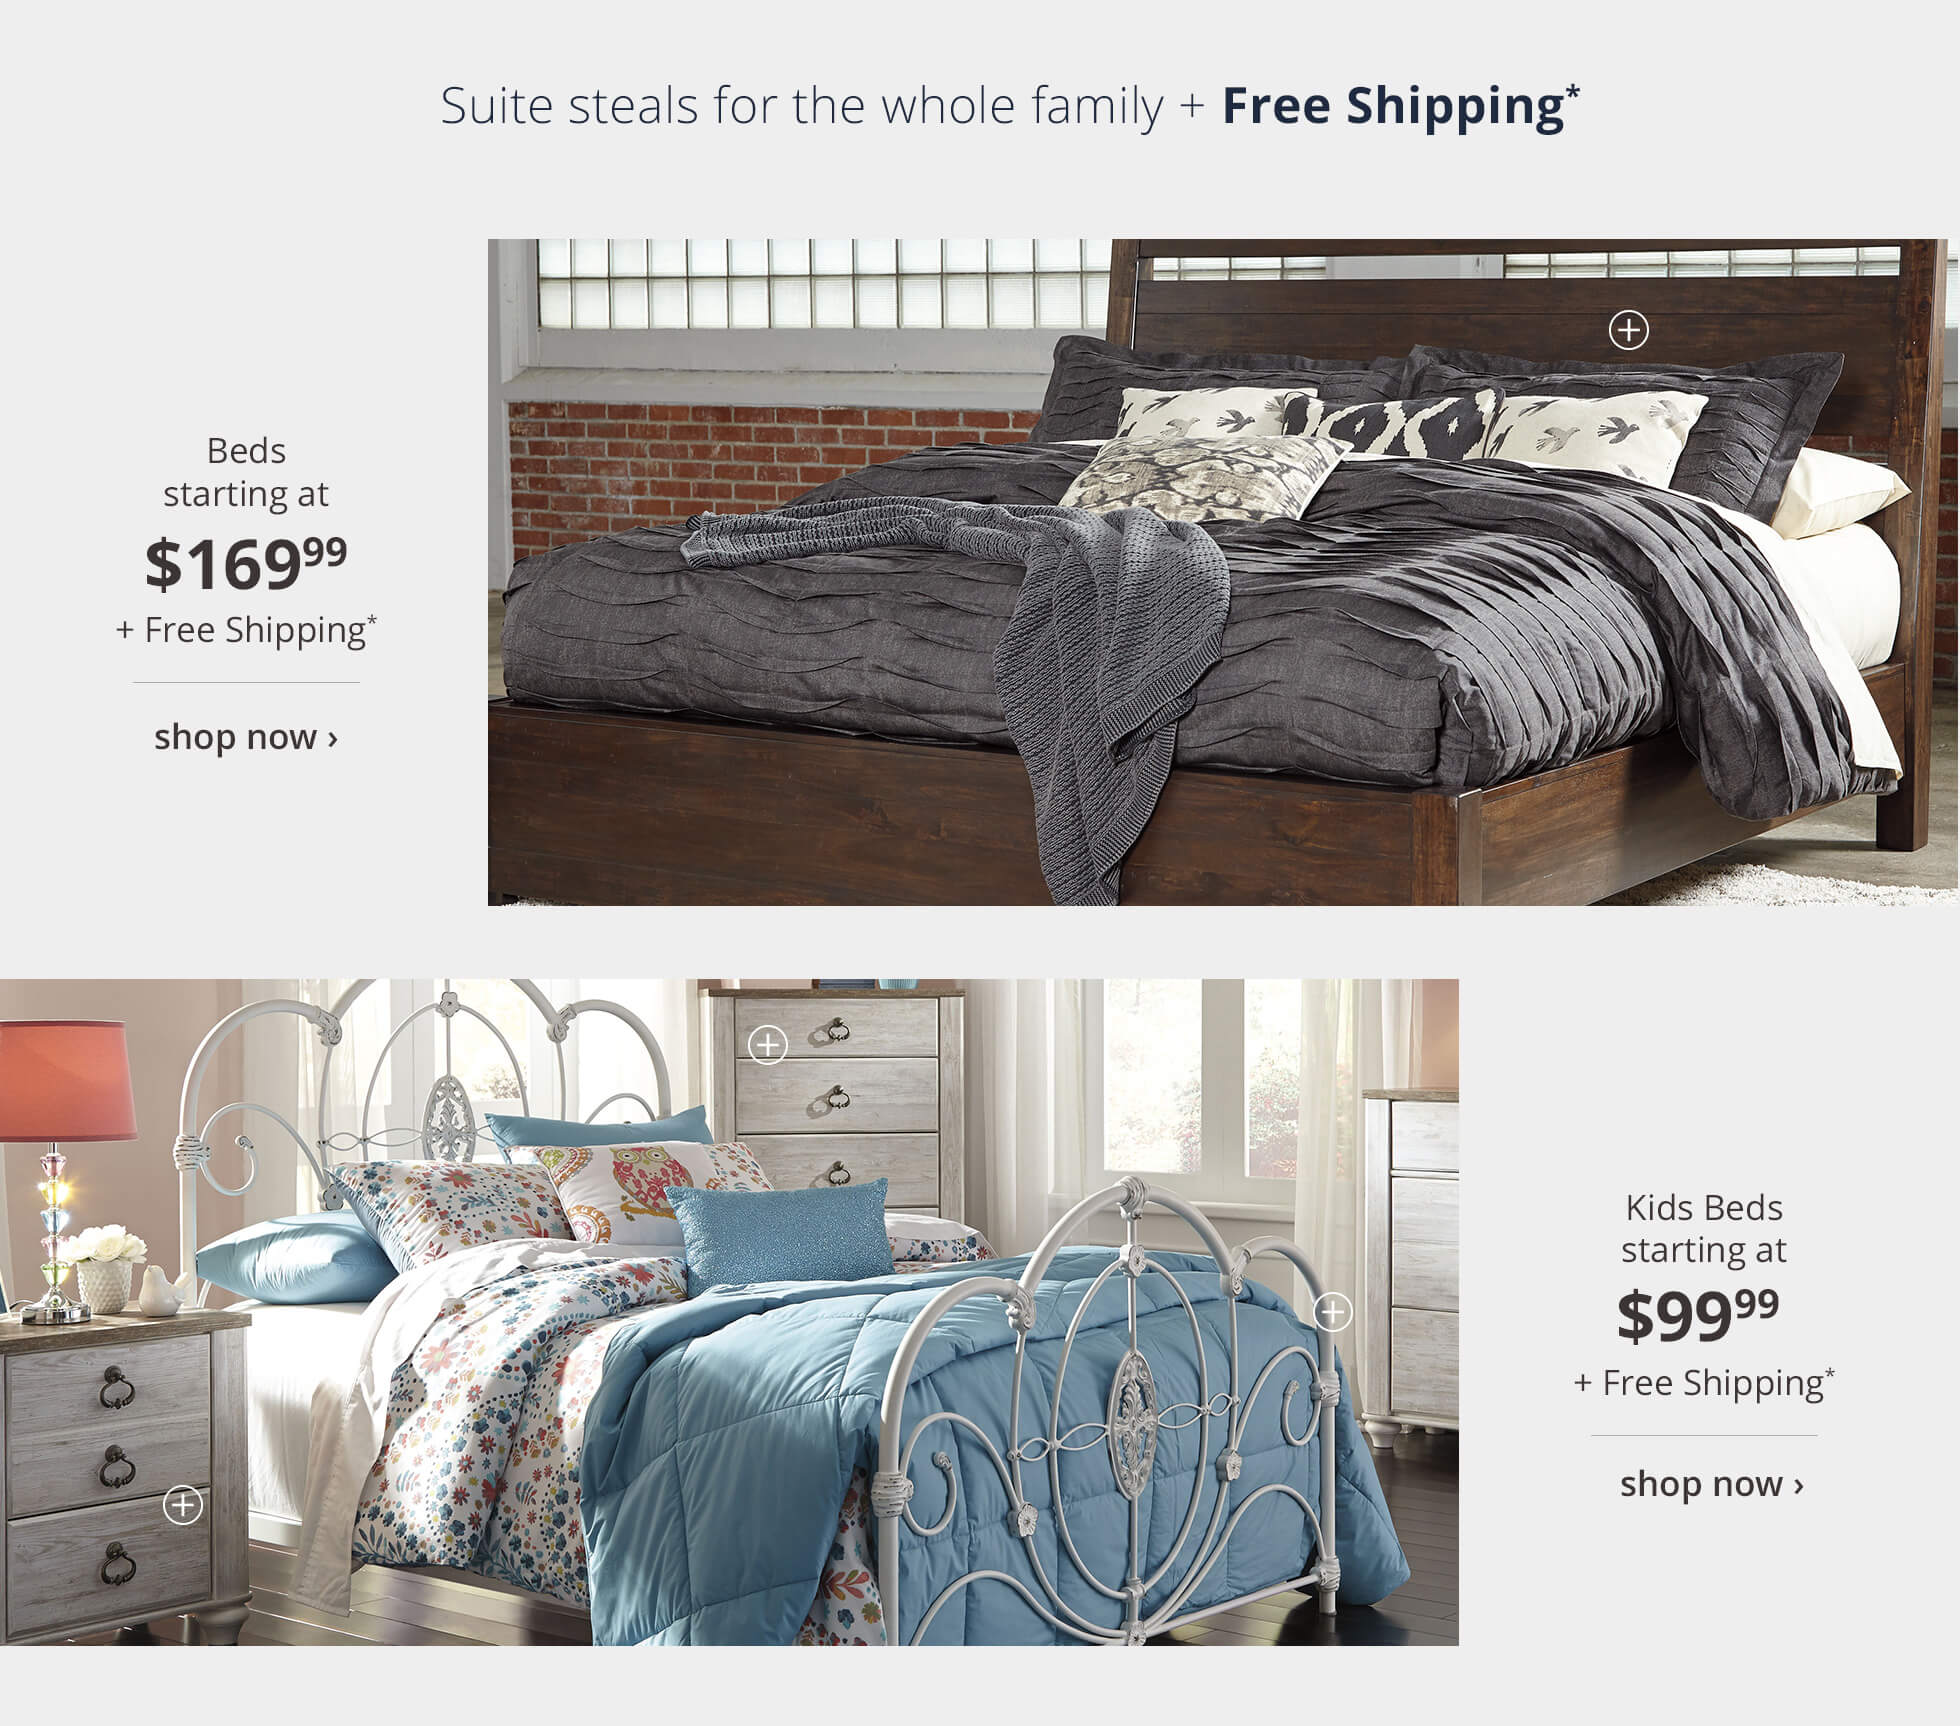 Beds and Kids Bed with Free Shipping